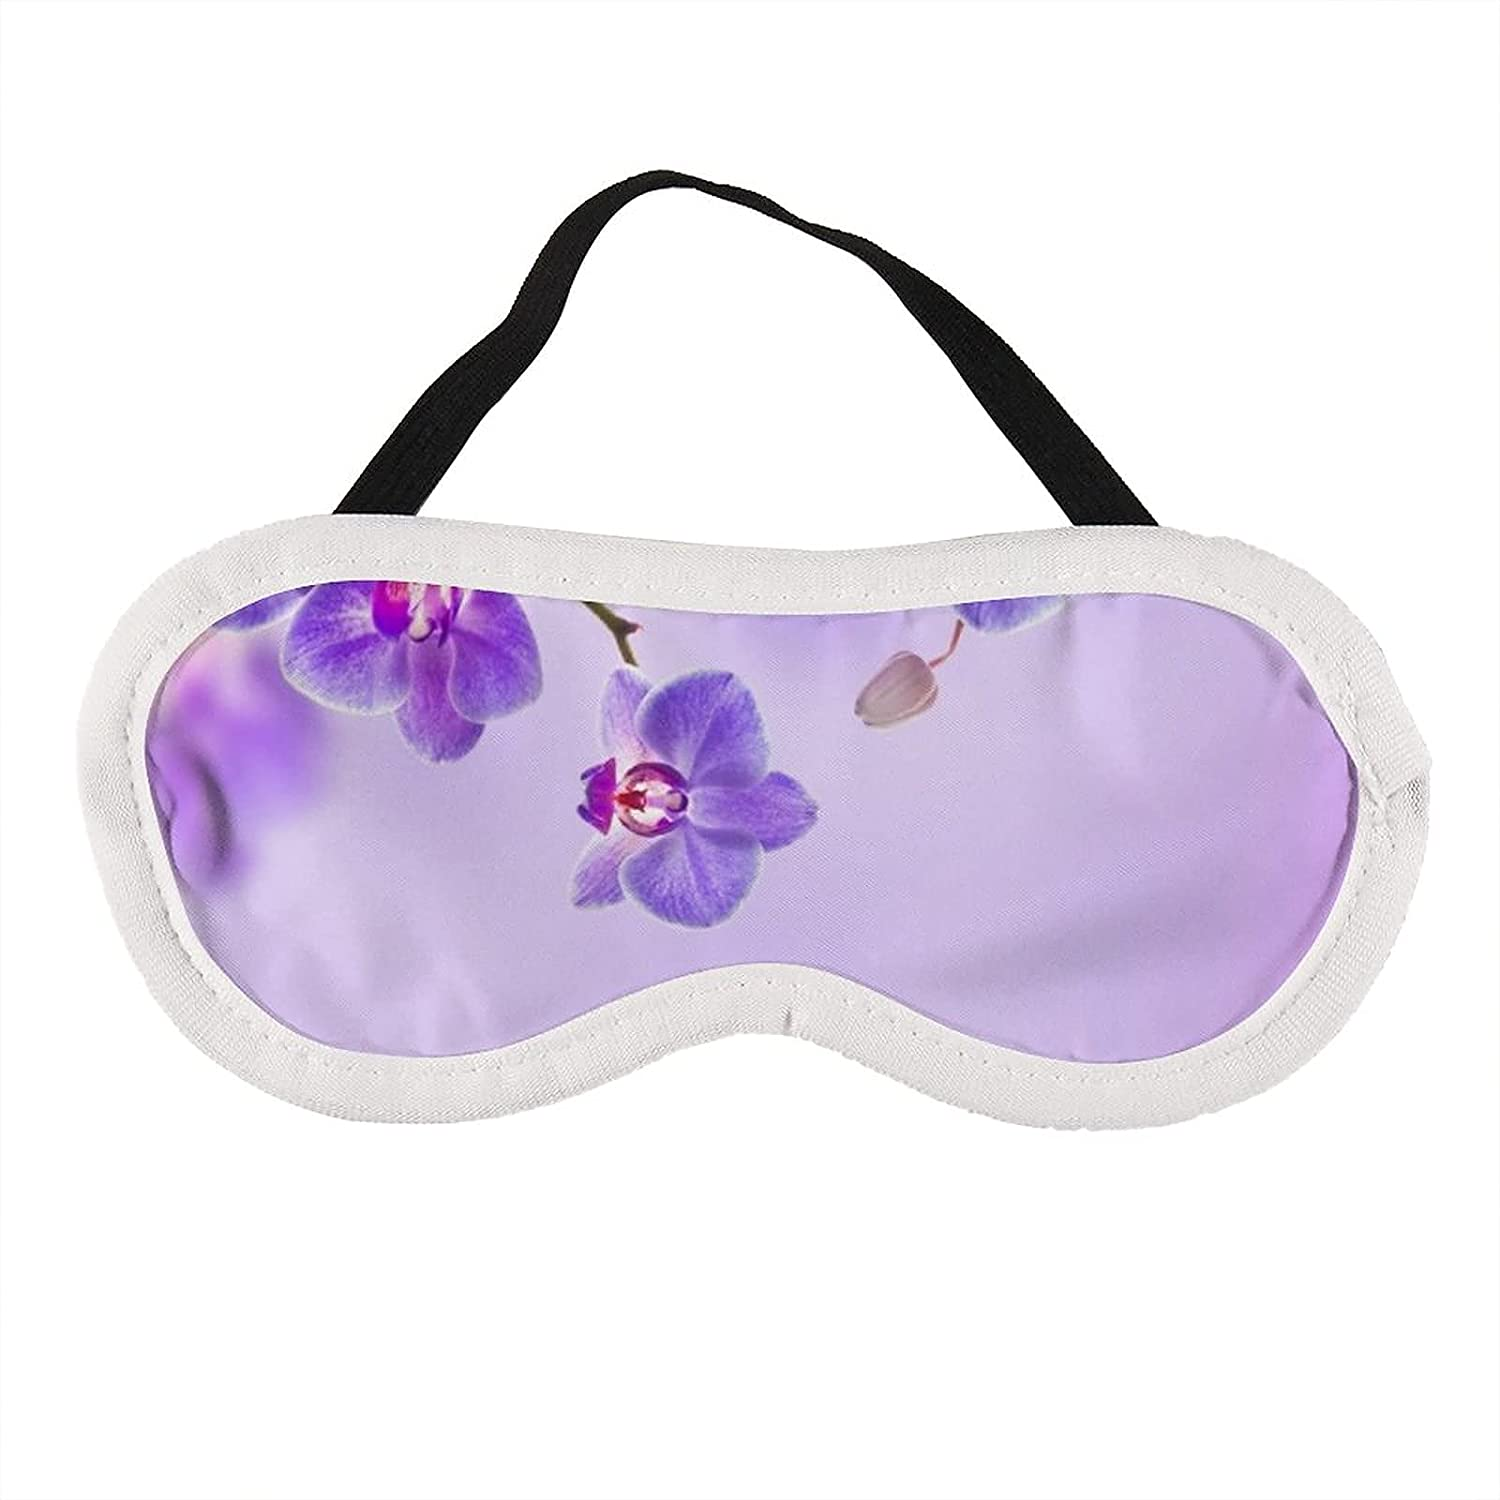 Tropical Orchids Purple Floral Sleep Eye Women Product Mask Kids Max 60% OFF Gir for